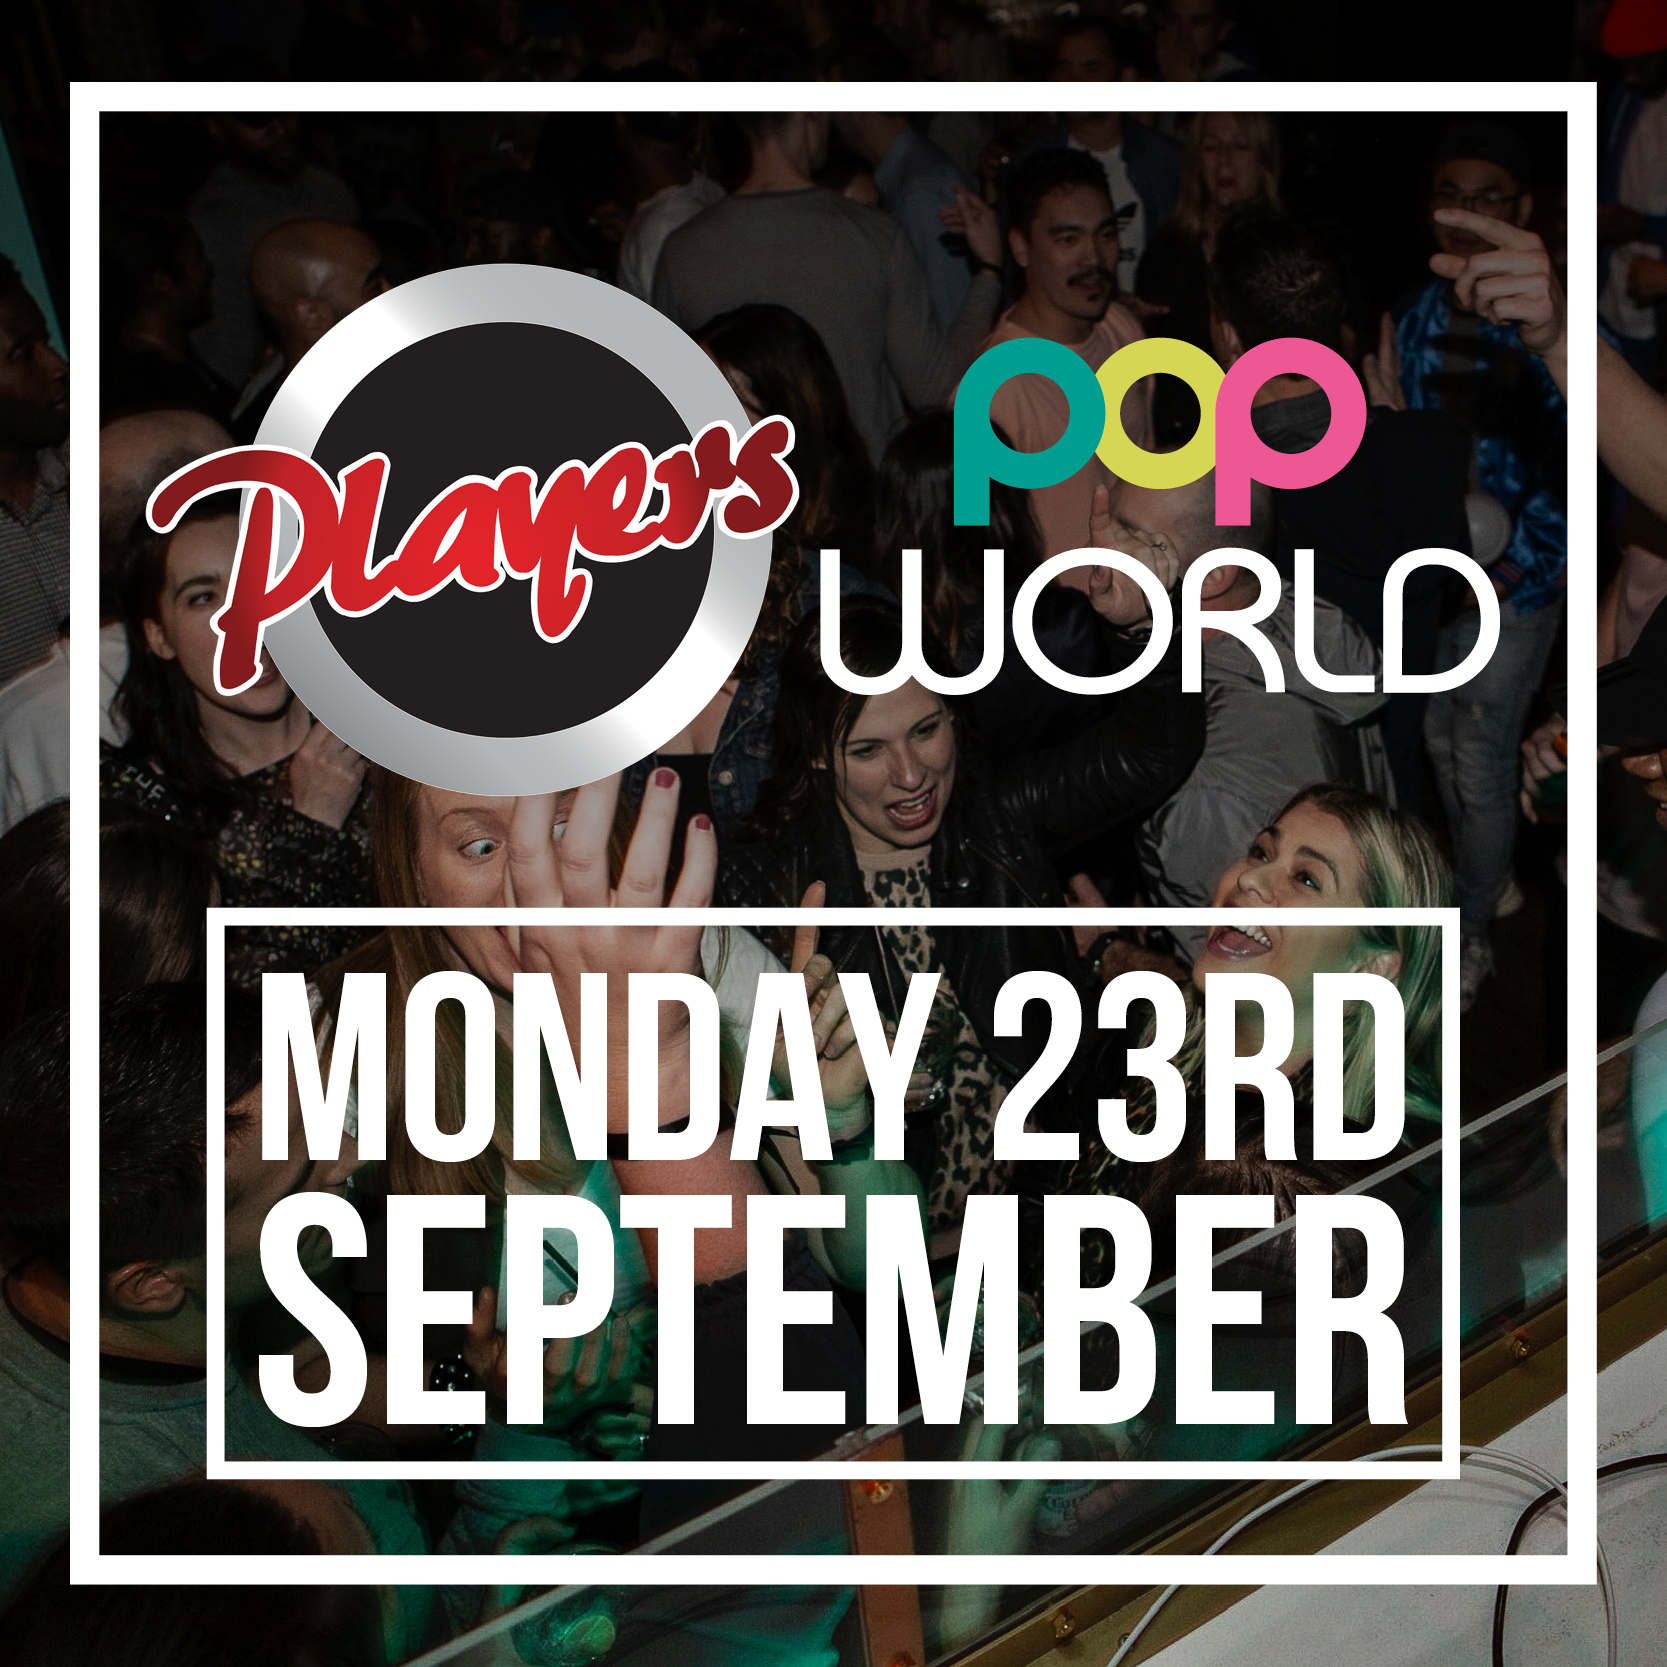 Players and Popworld graphic